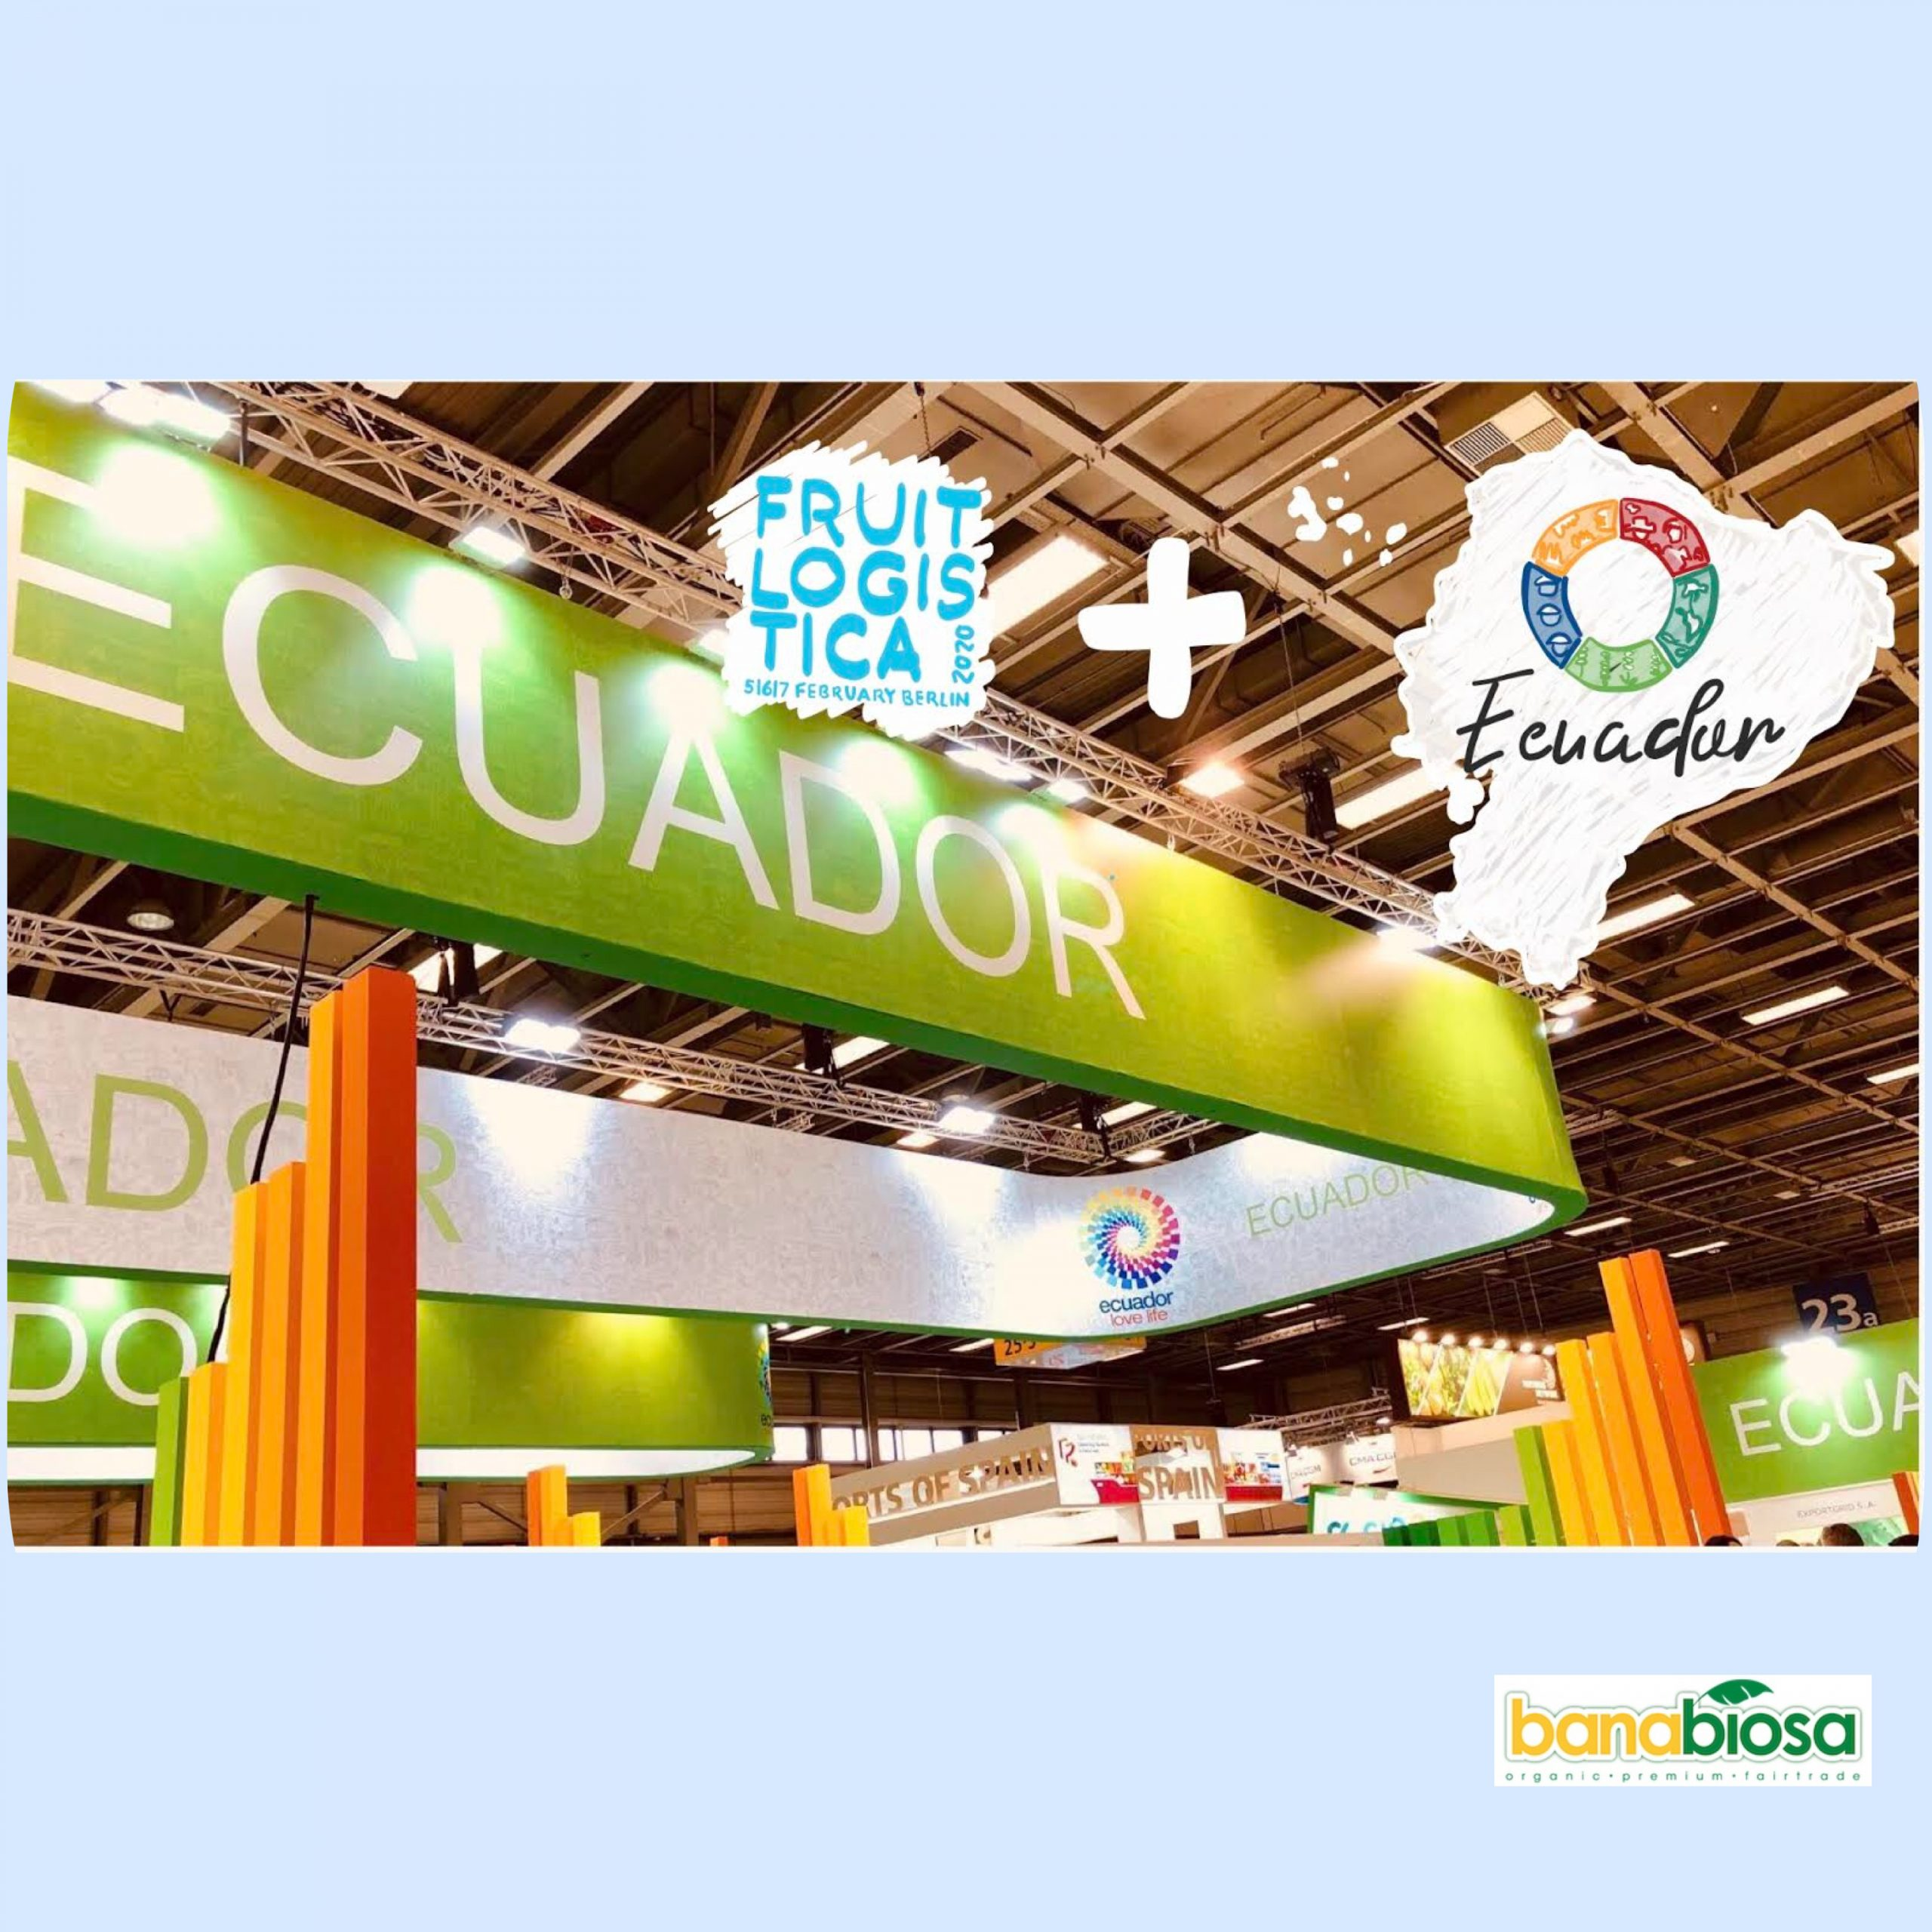 Ecuador Berlin Fruit Logistica 2020